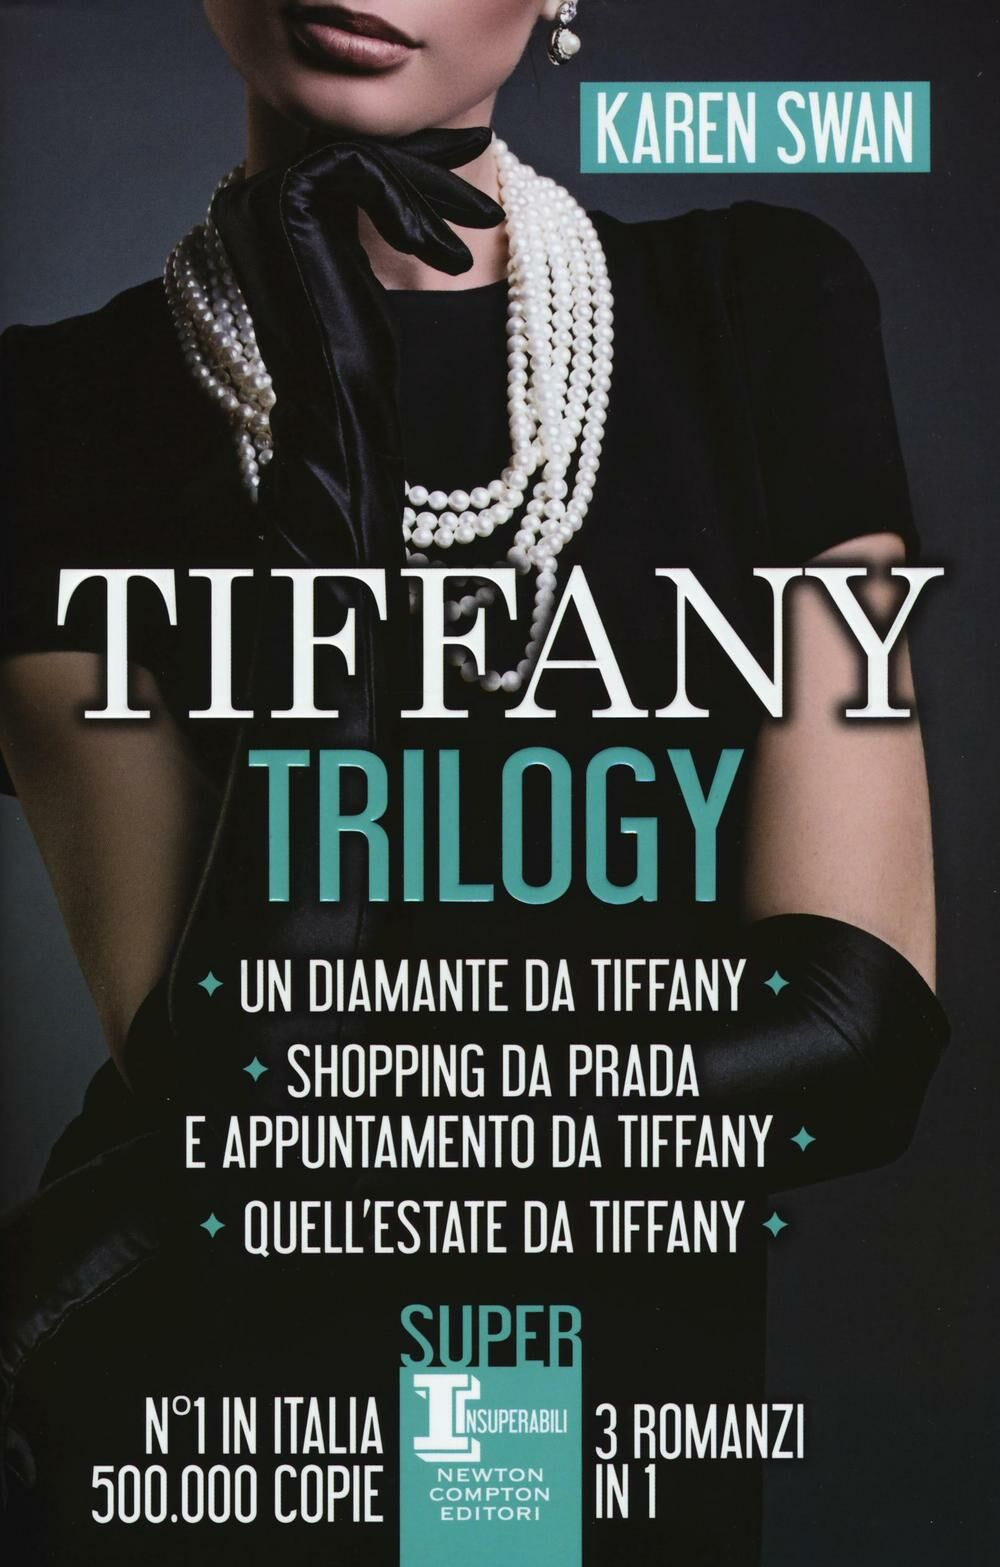 Tiffany trilogy: Un diamante da Tiffany-Shopping da Prada e appuntamento da Tiffany-Quell'estate da Tiffany